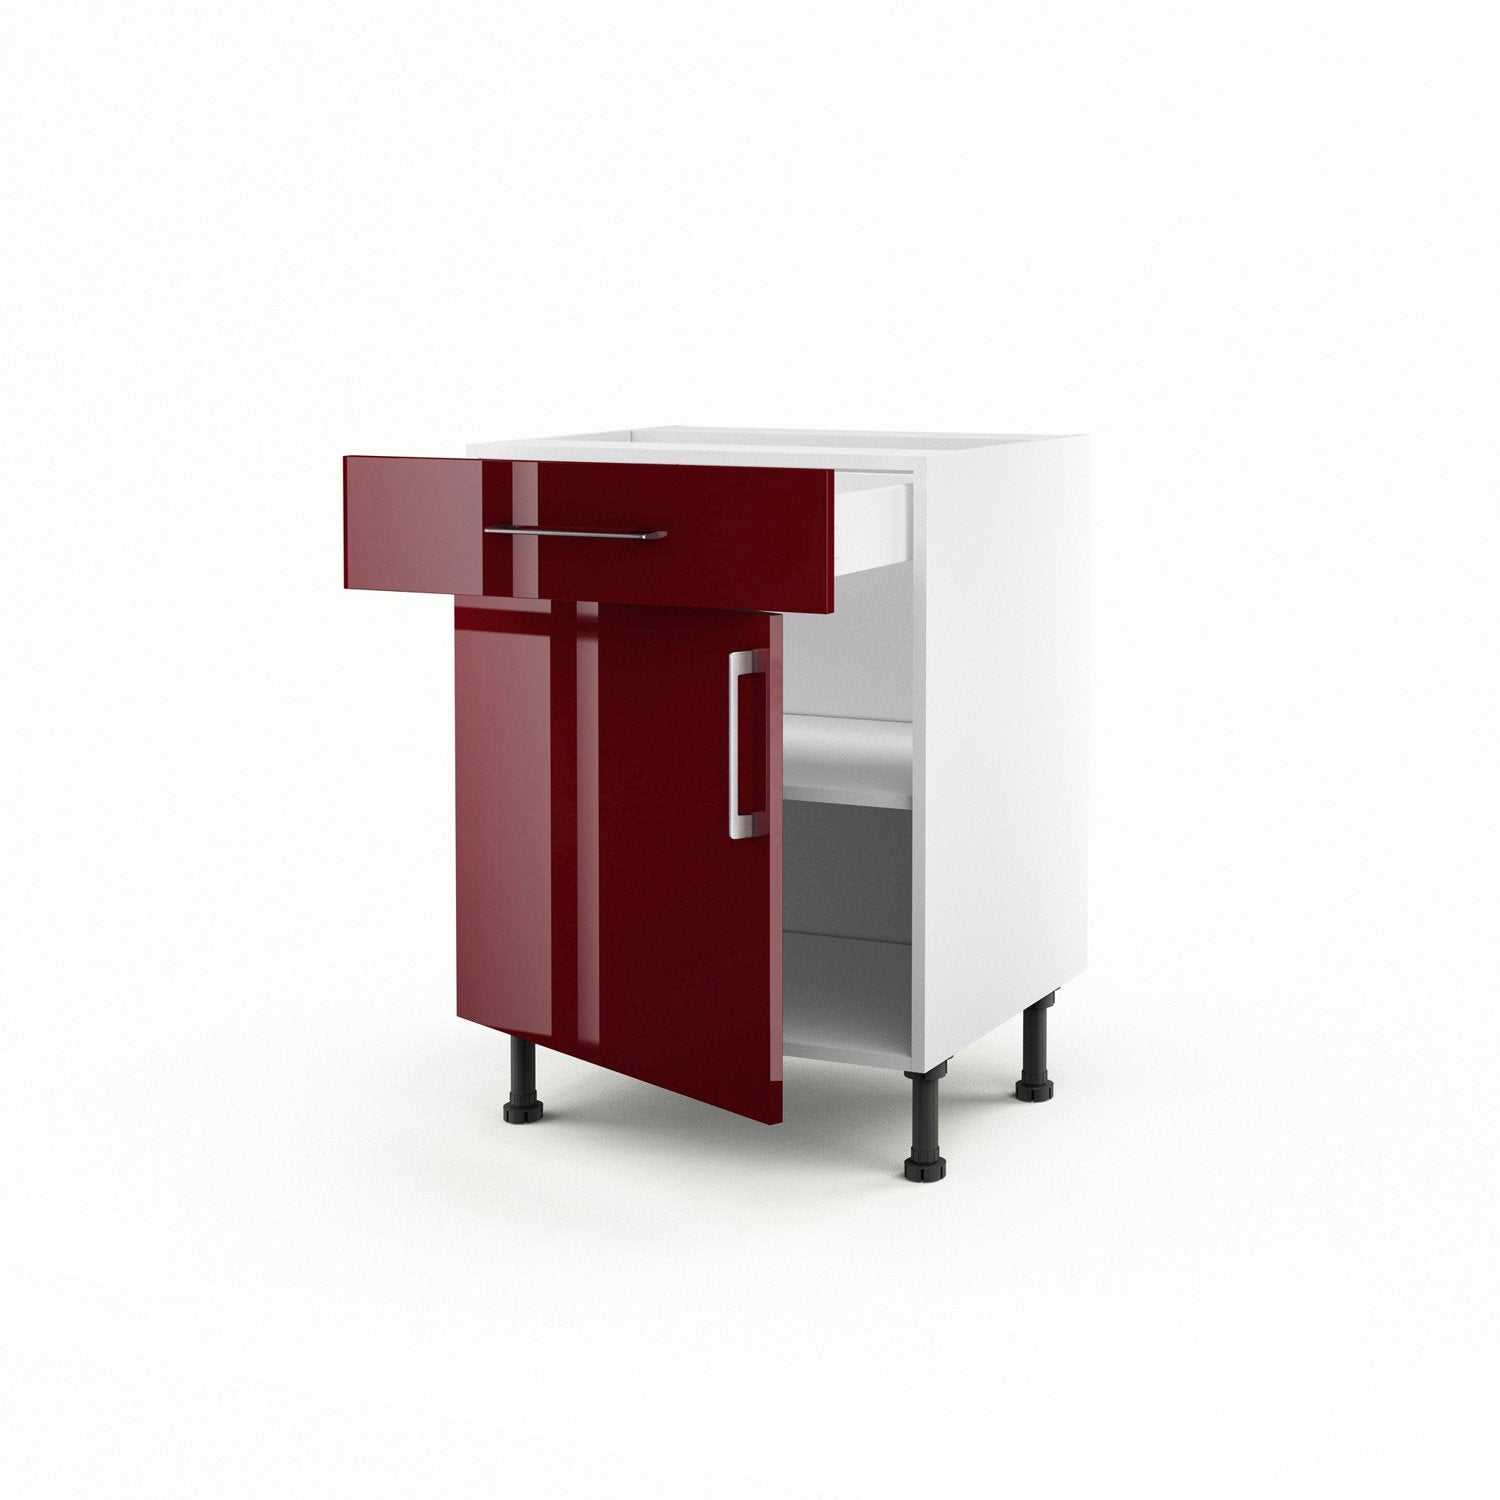 meuble de cuisine bas rouge 1 porte 1 tiroir griotte x x cm leroy merlin. Black Bedroom Furniture Sets. Home Design Ideas